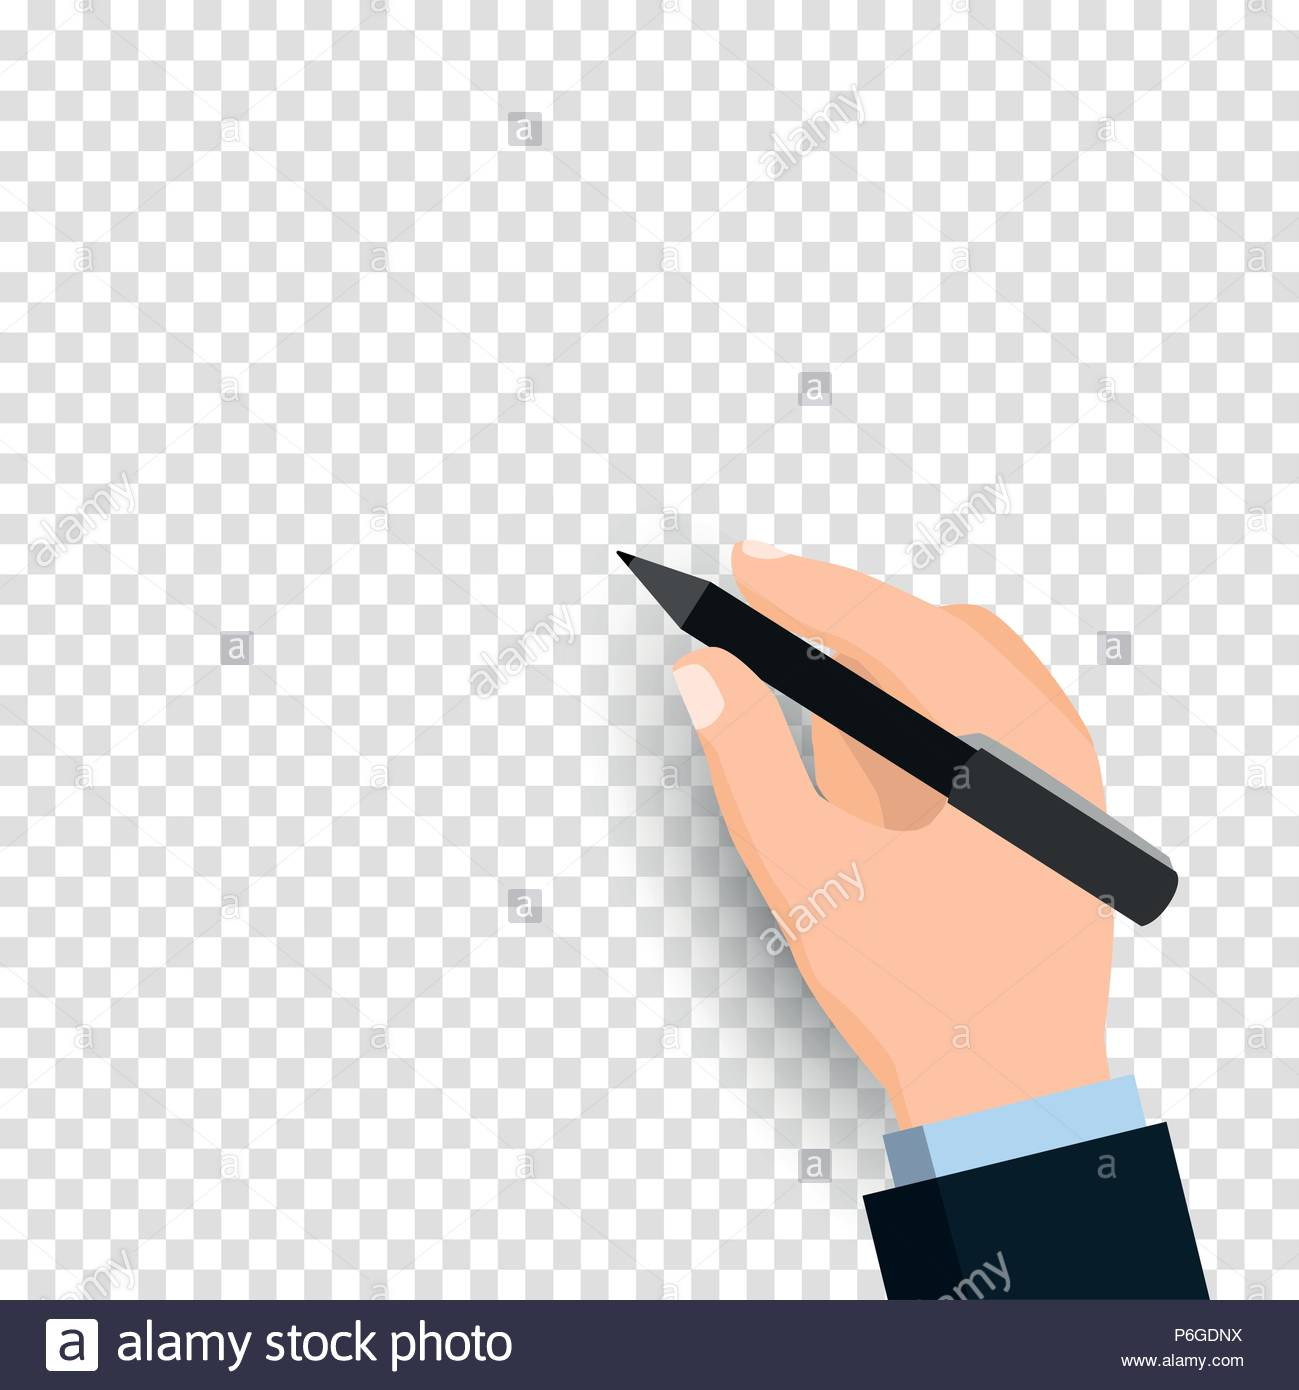 Hand holding pen and writing isolated on transparent background 1299x1390